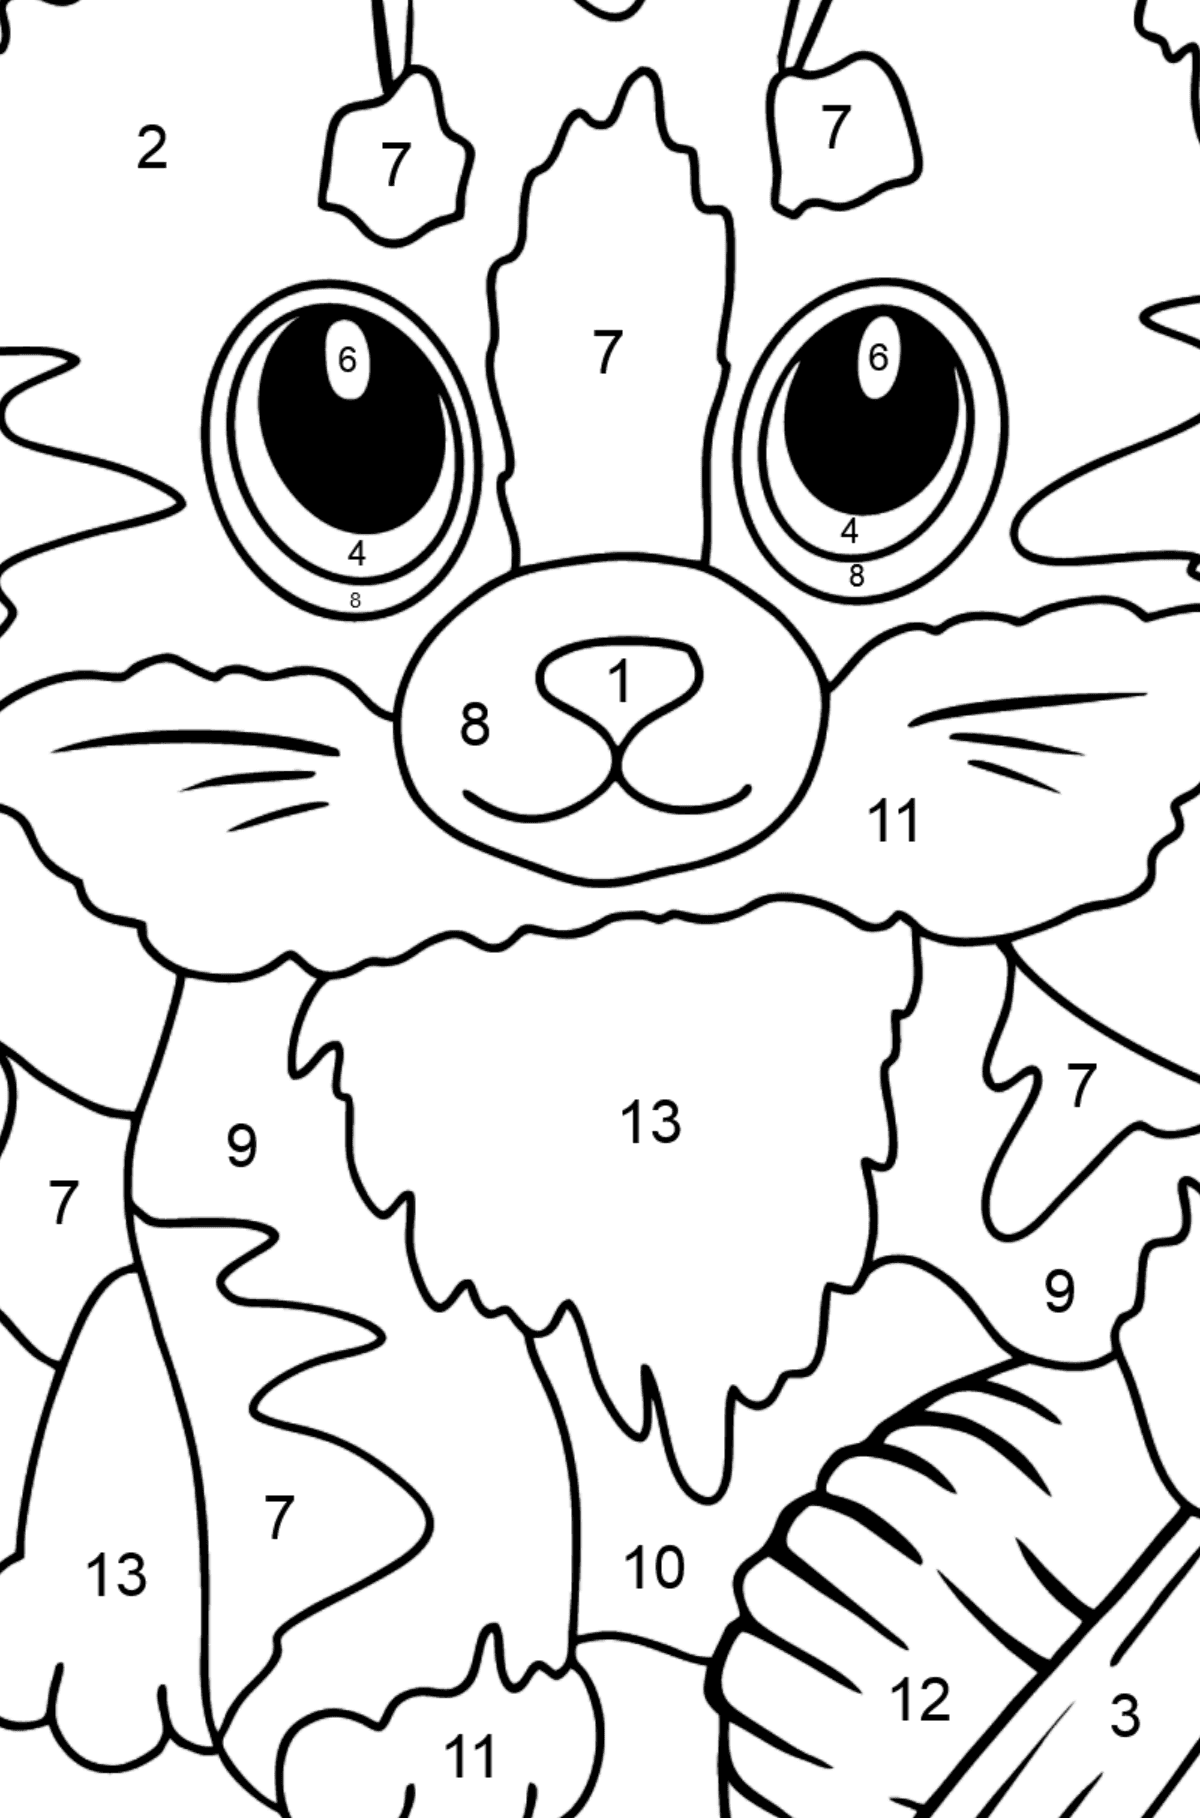 Cute Cat Coloring Page - Coloring by Numbers for Kids